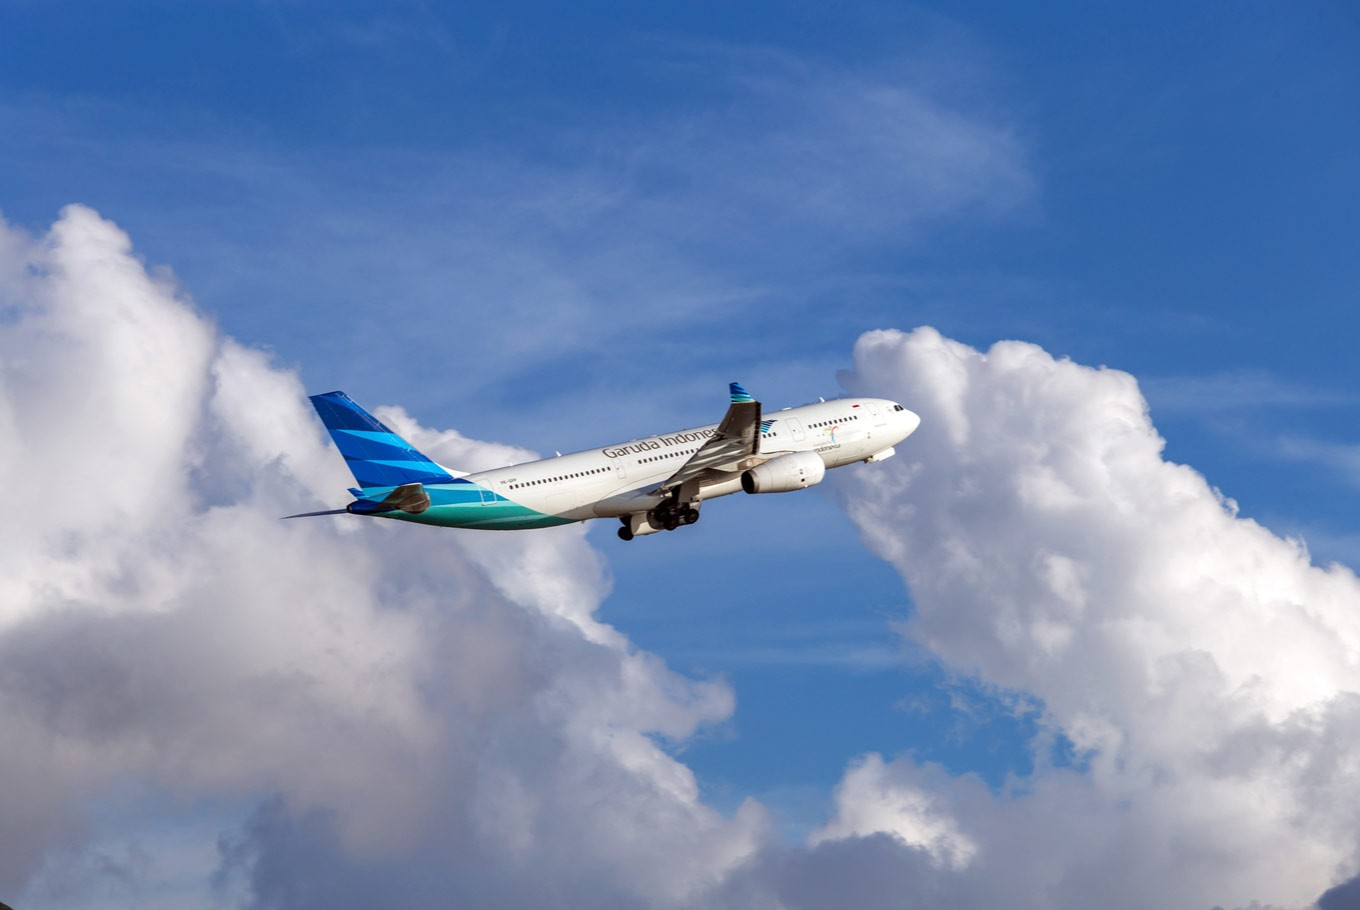 Garuda still has about 170,000 promotional seats on offer